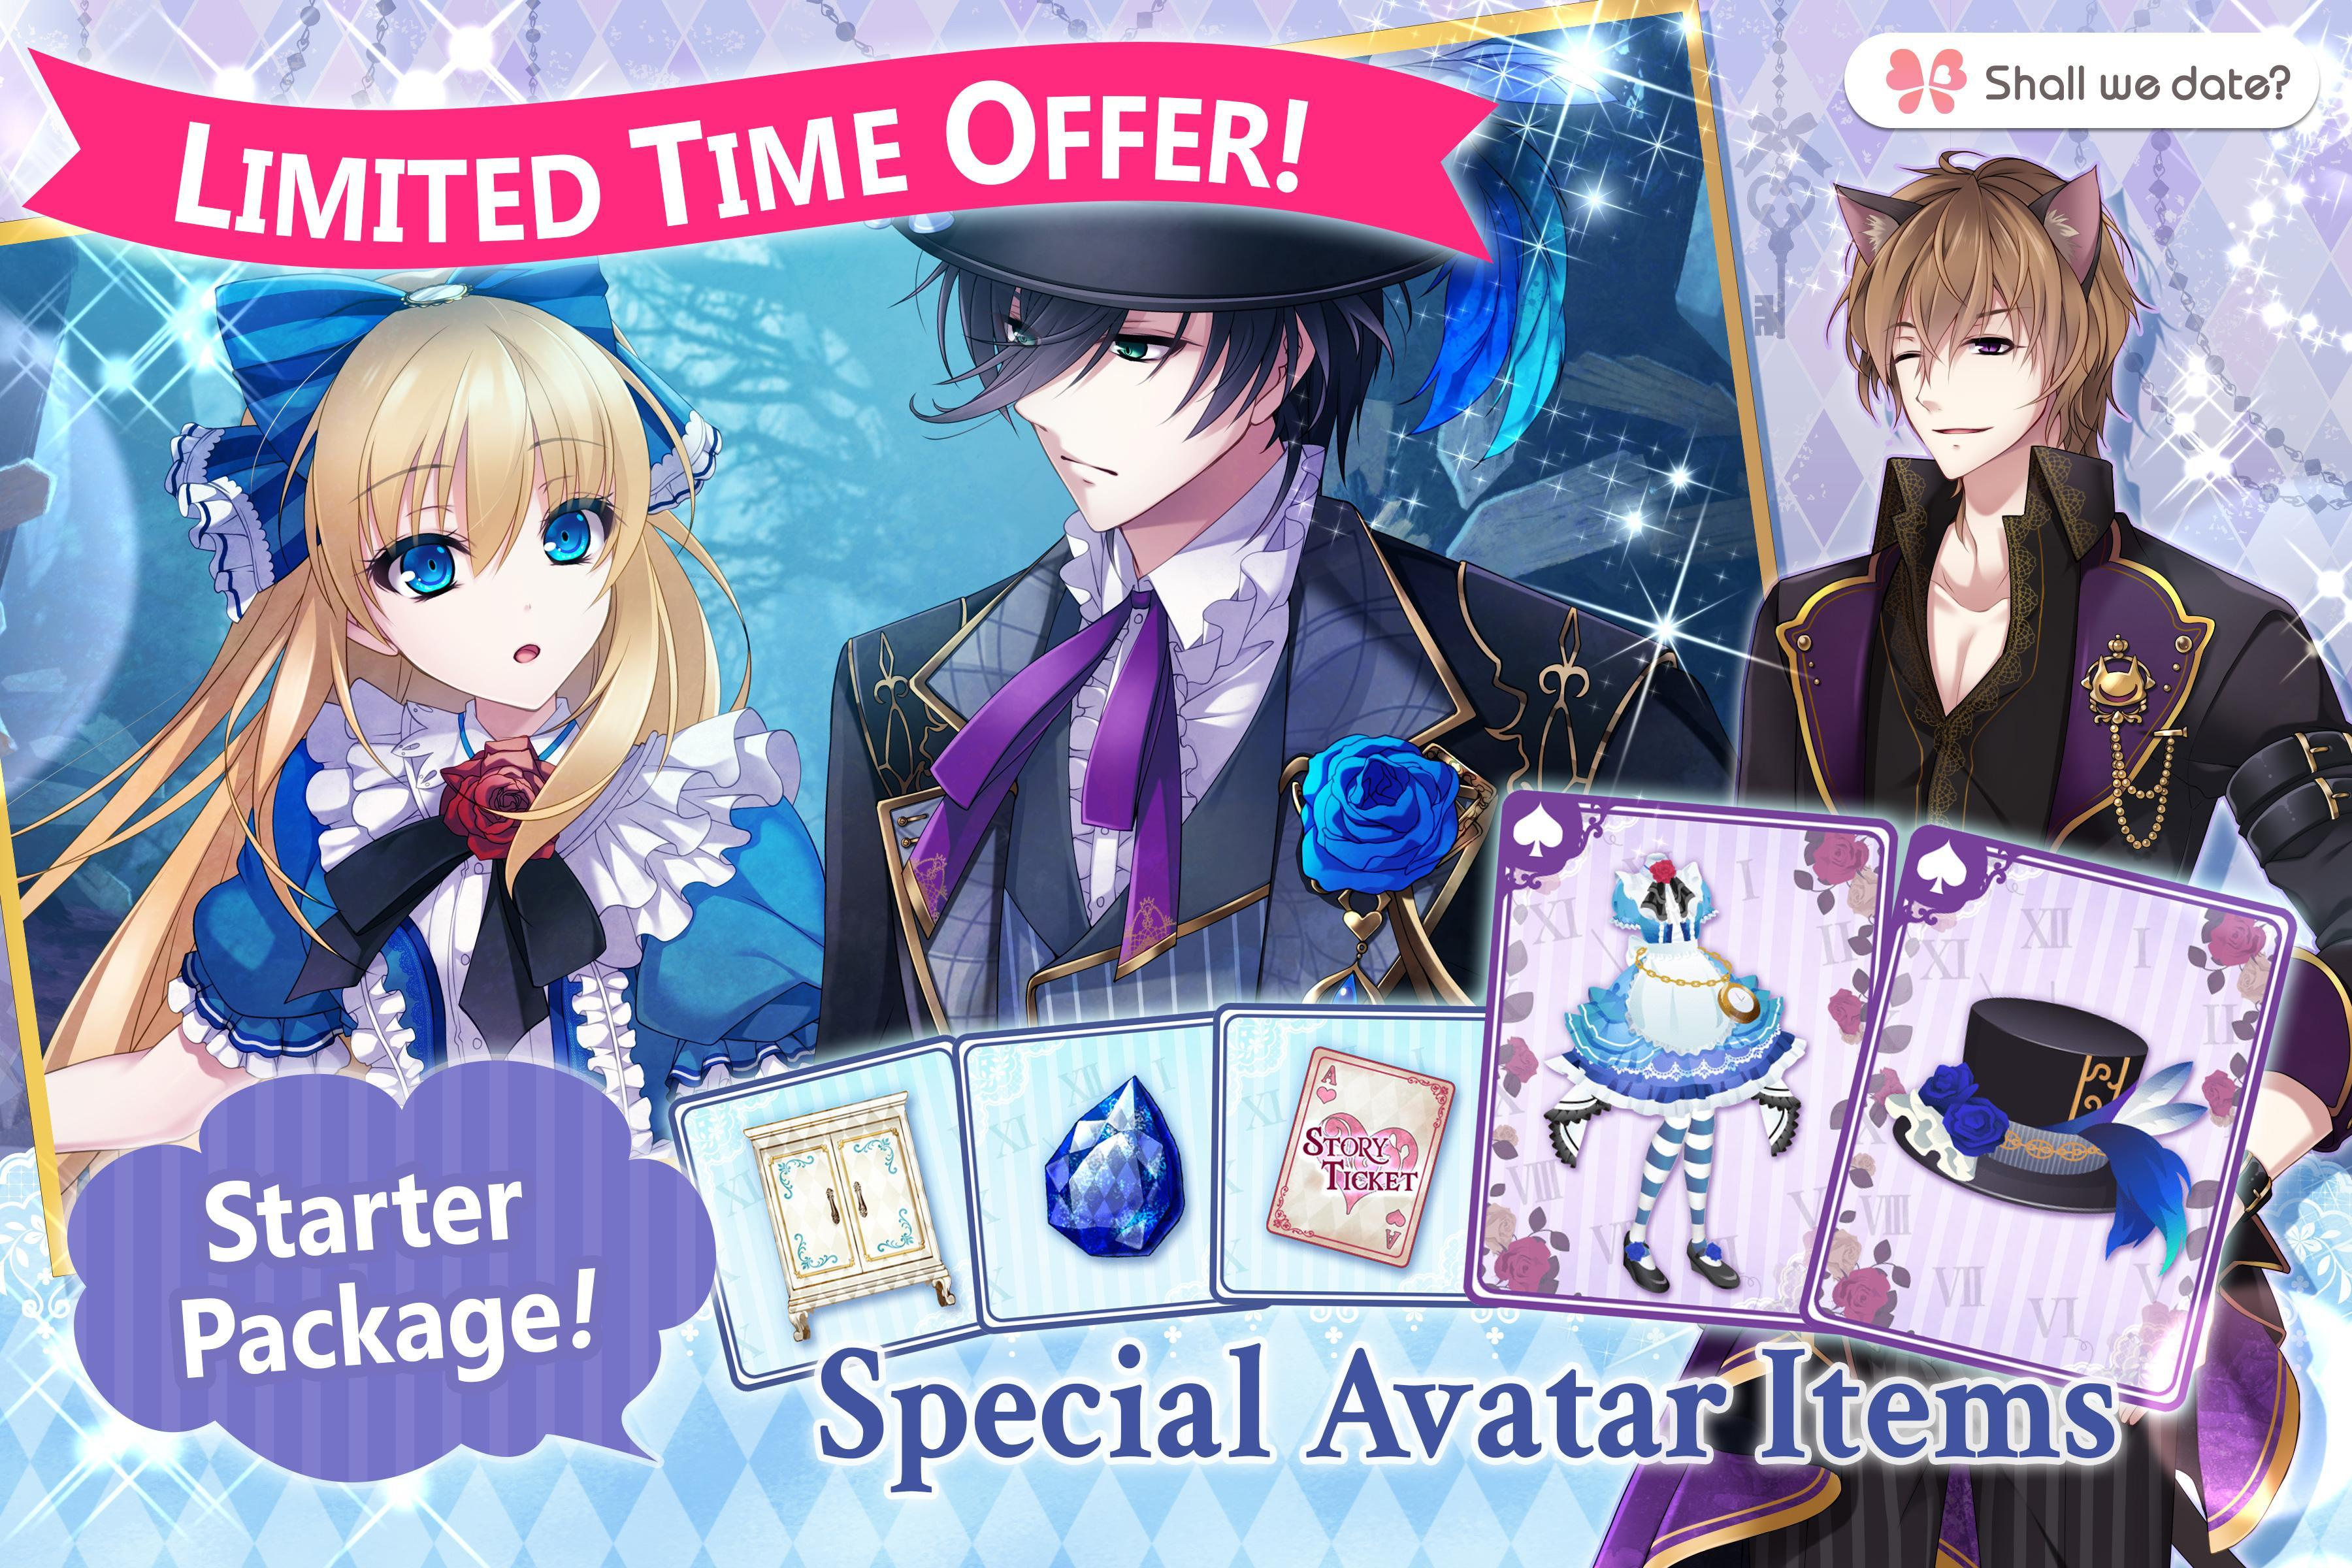 Lost Alice - otome game/dating sim #shall we date 1.5.1 Screenshot 22